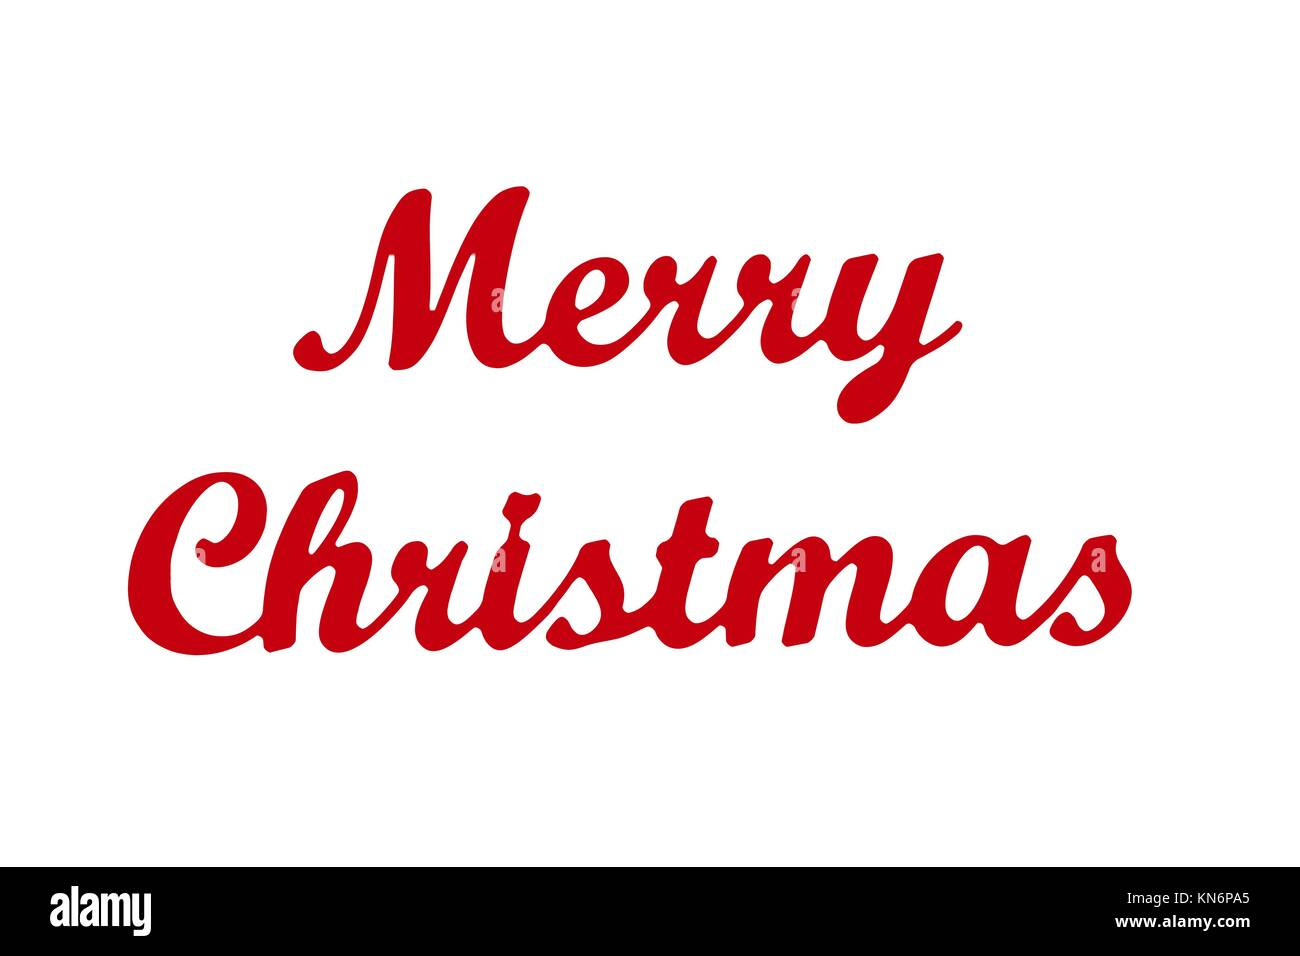 Merry Christmas Writing.Merry Christmas Writing In Red Isolated Stock Photo